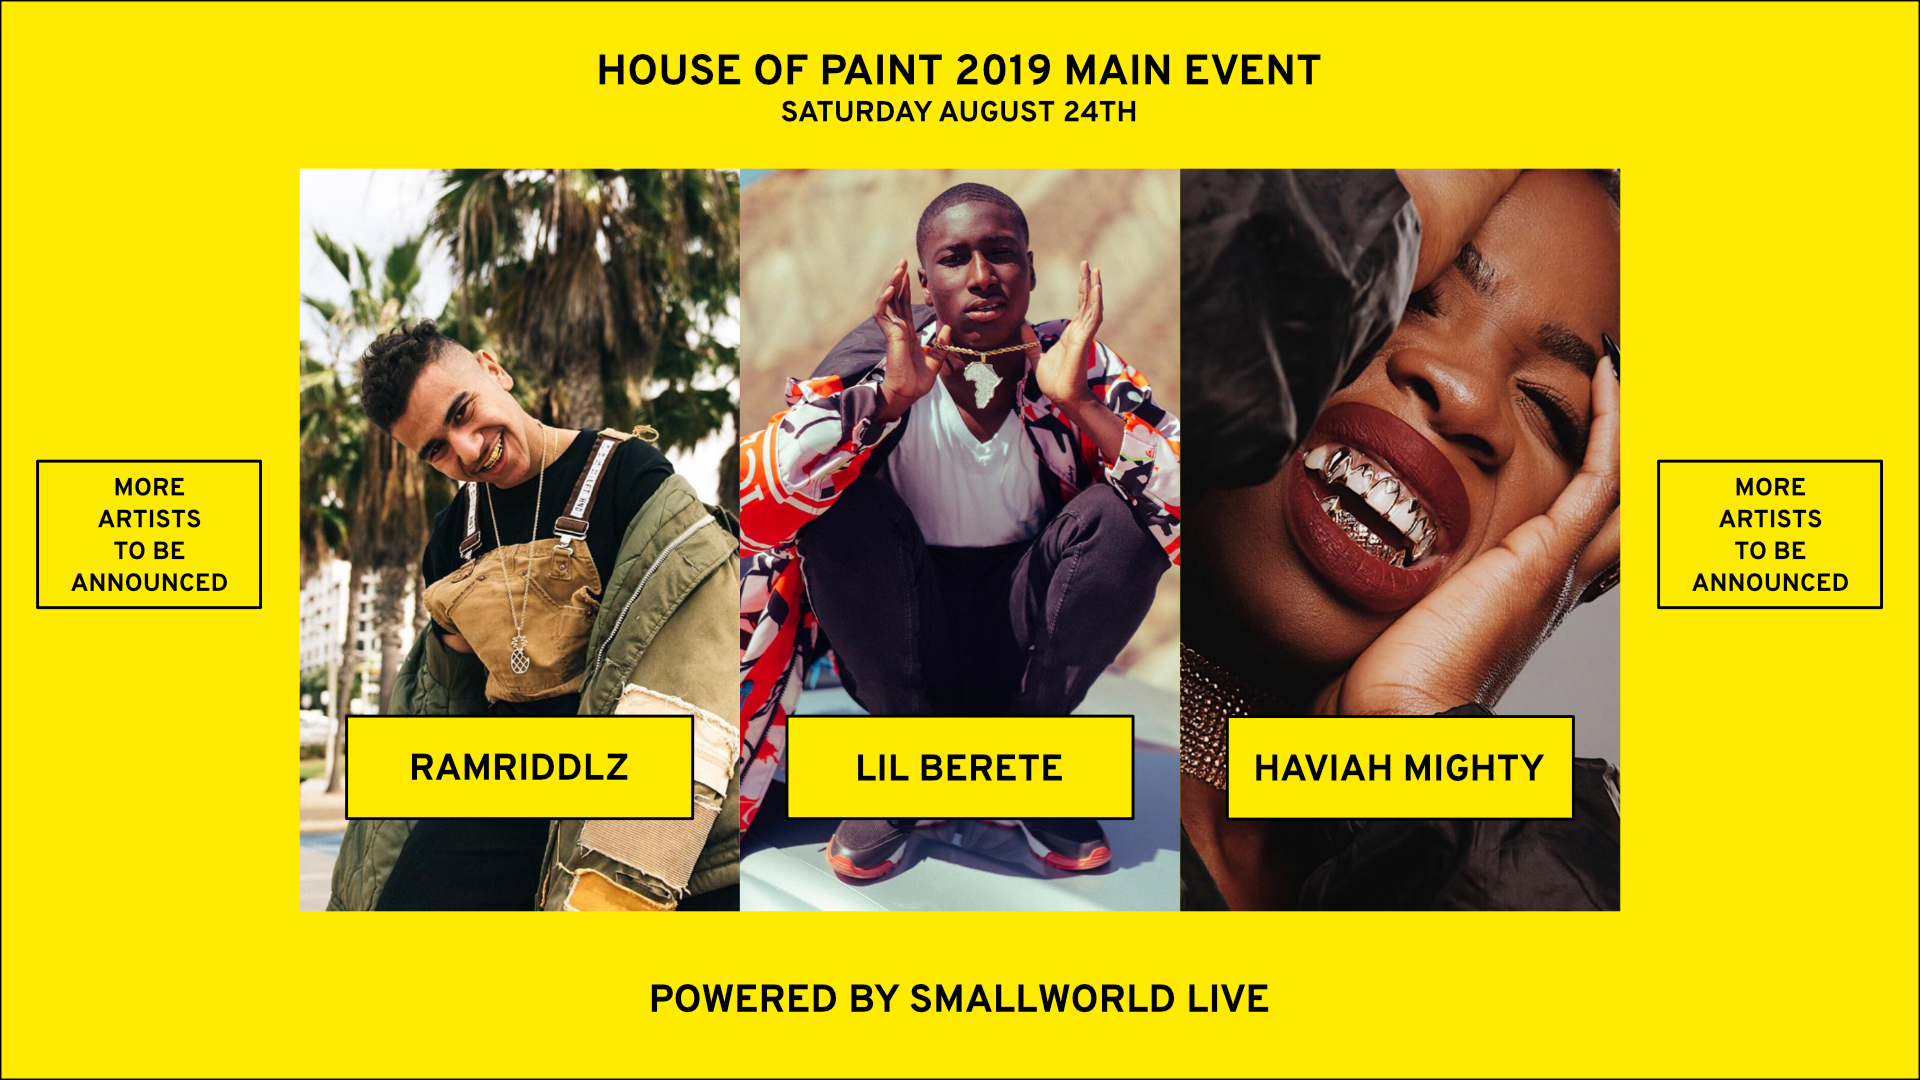 Smallworld-LIVE-House-of-paint-2019.jpg